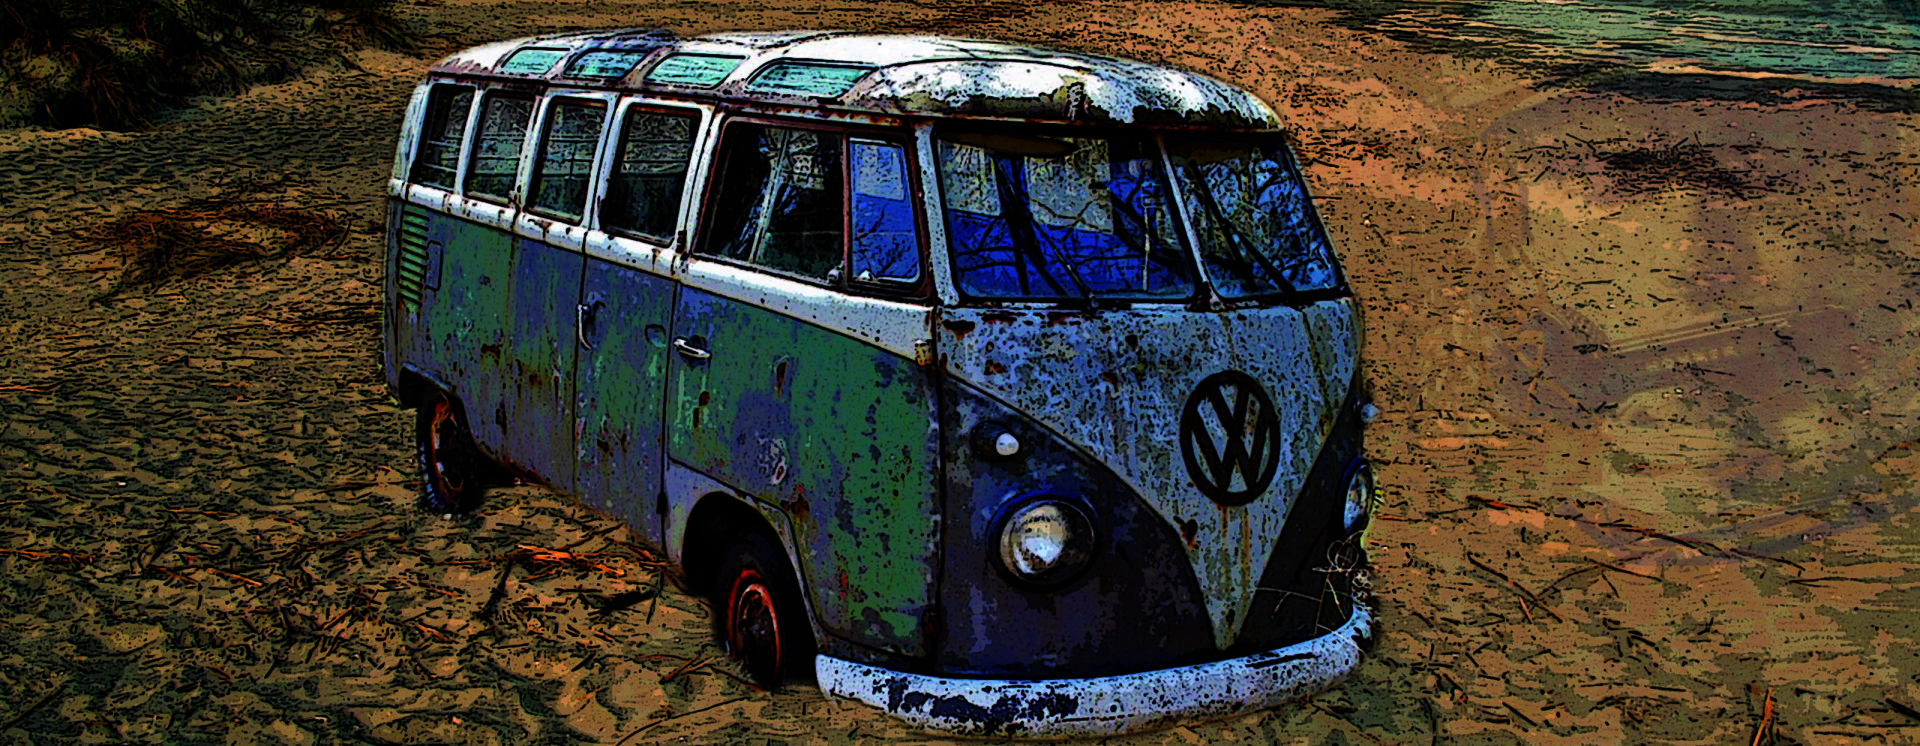 Edge of america vw face2 copy